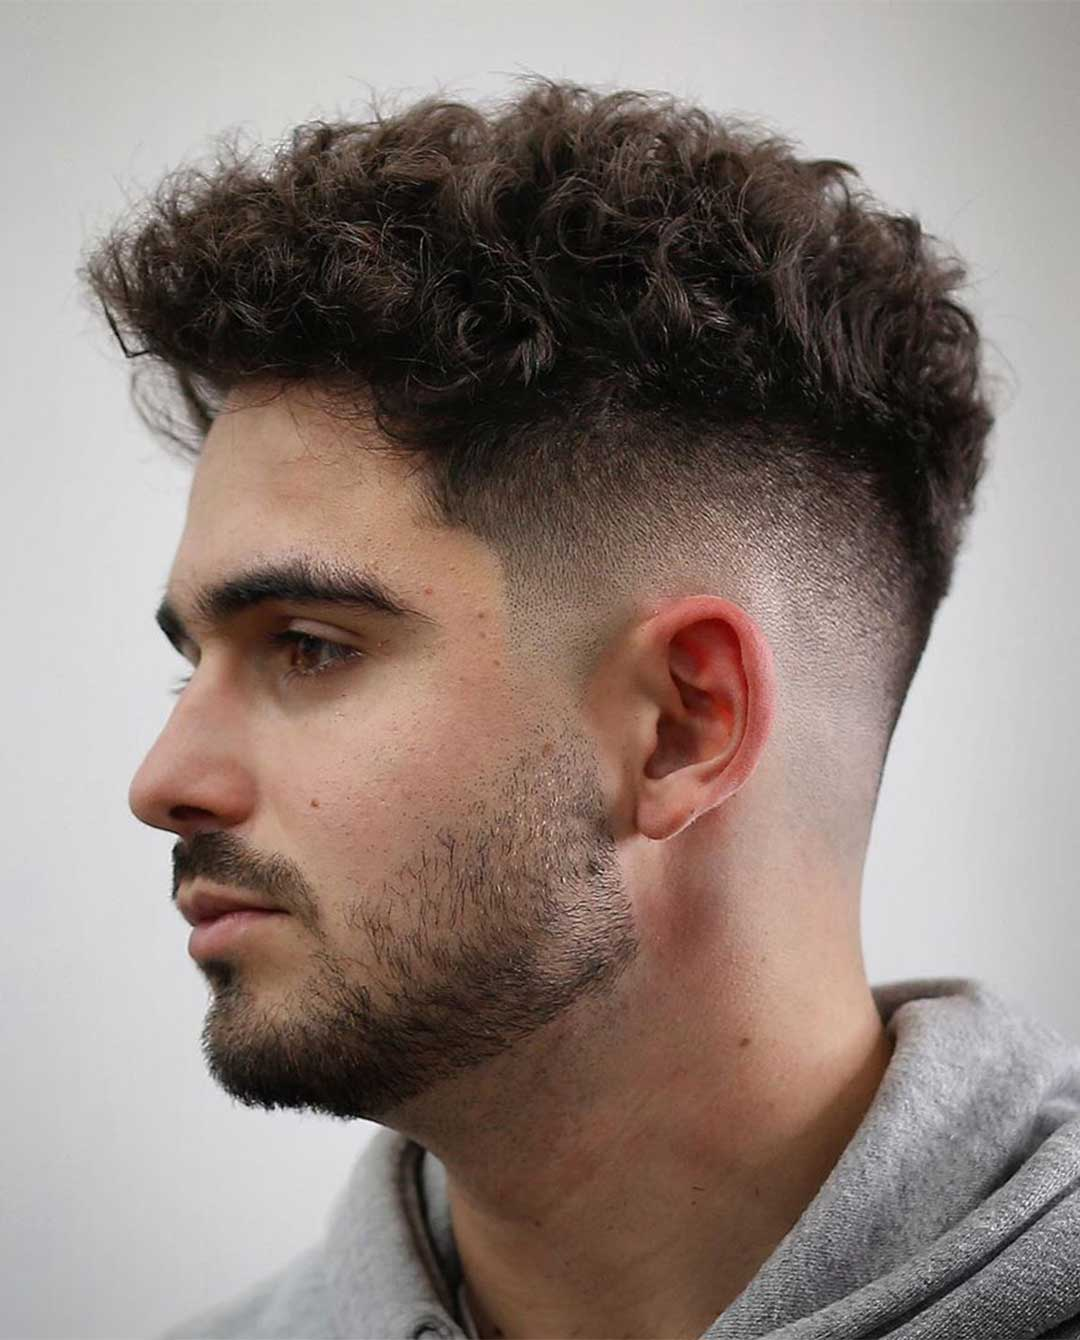 Simple Perm Hairstyle